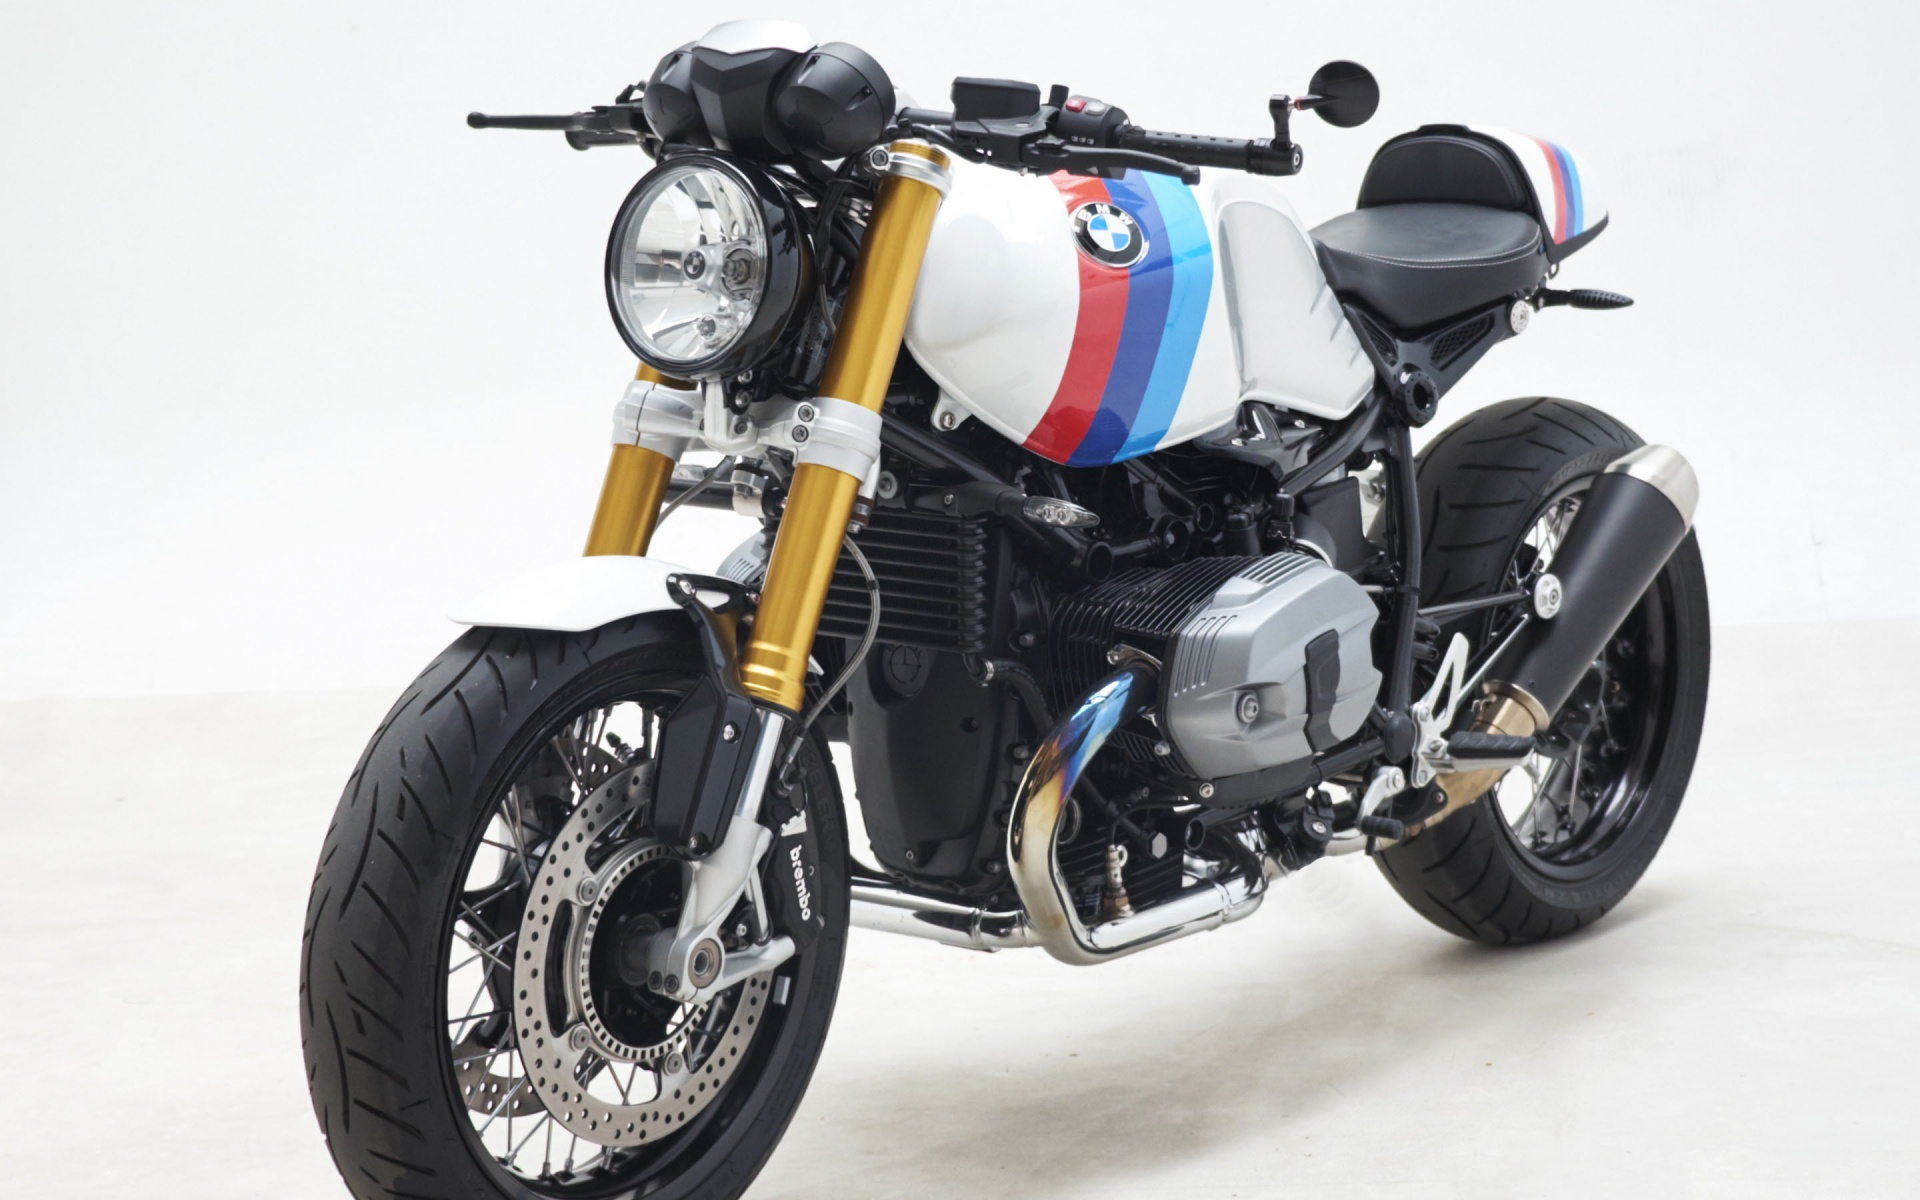 bmw r nine t cafe racer wallpapers 1920x1200 438286. Black Bedroom Furniture Sets. Home Design Ideas